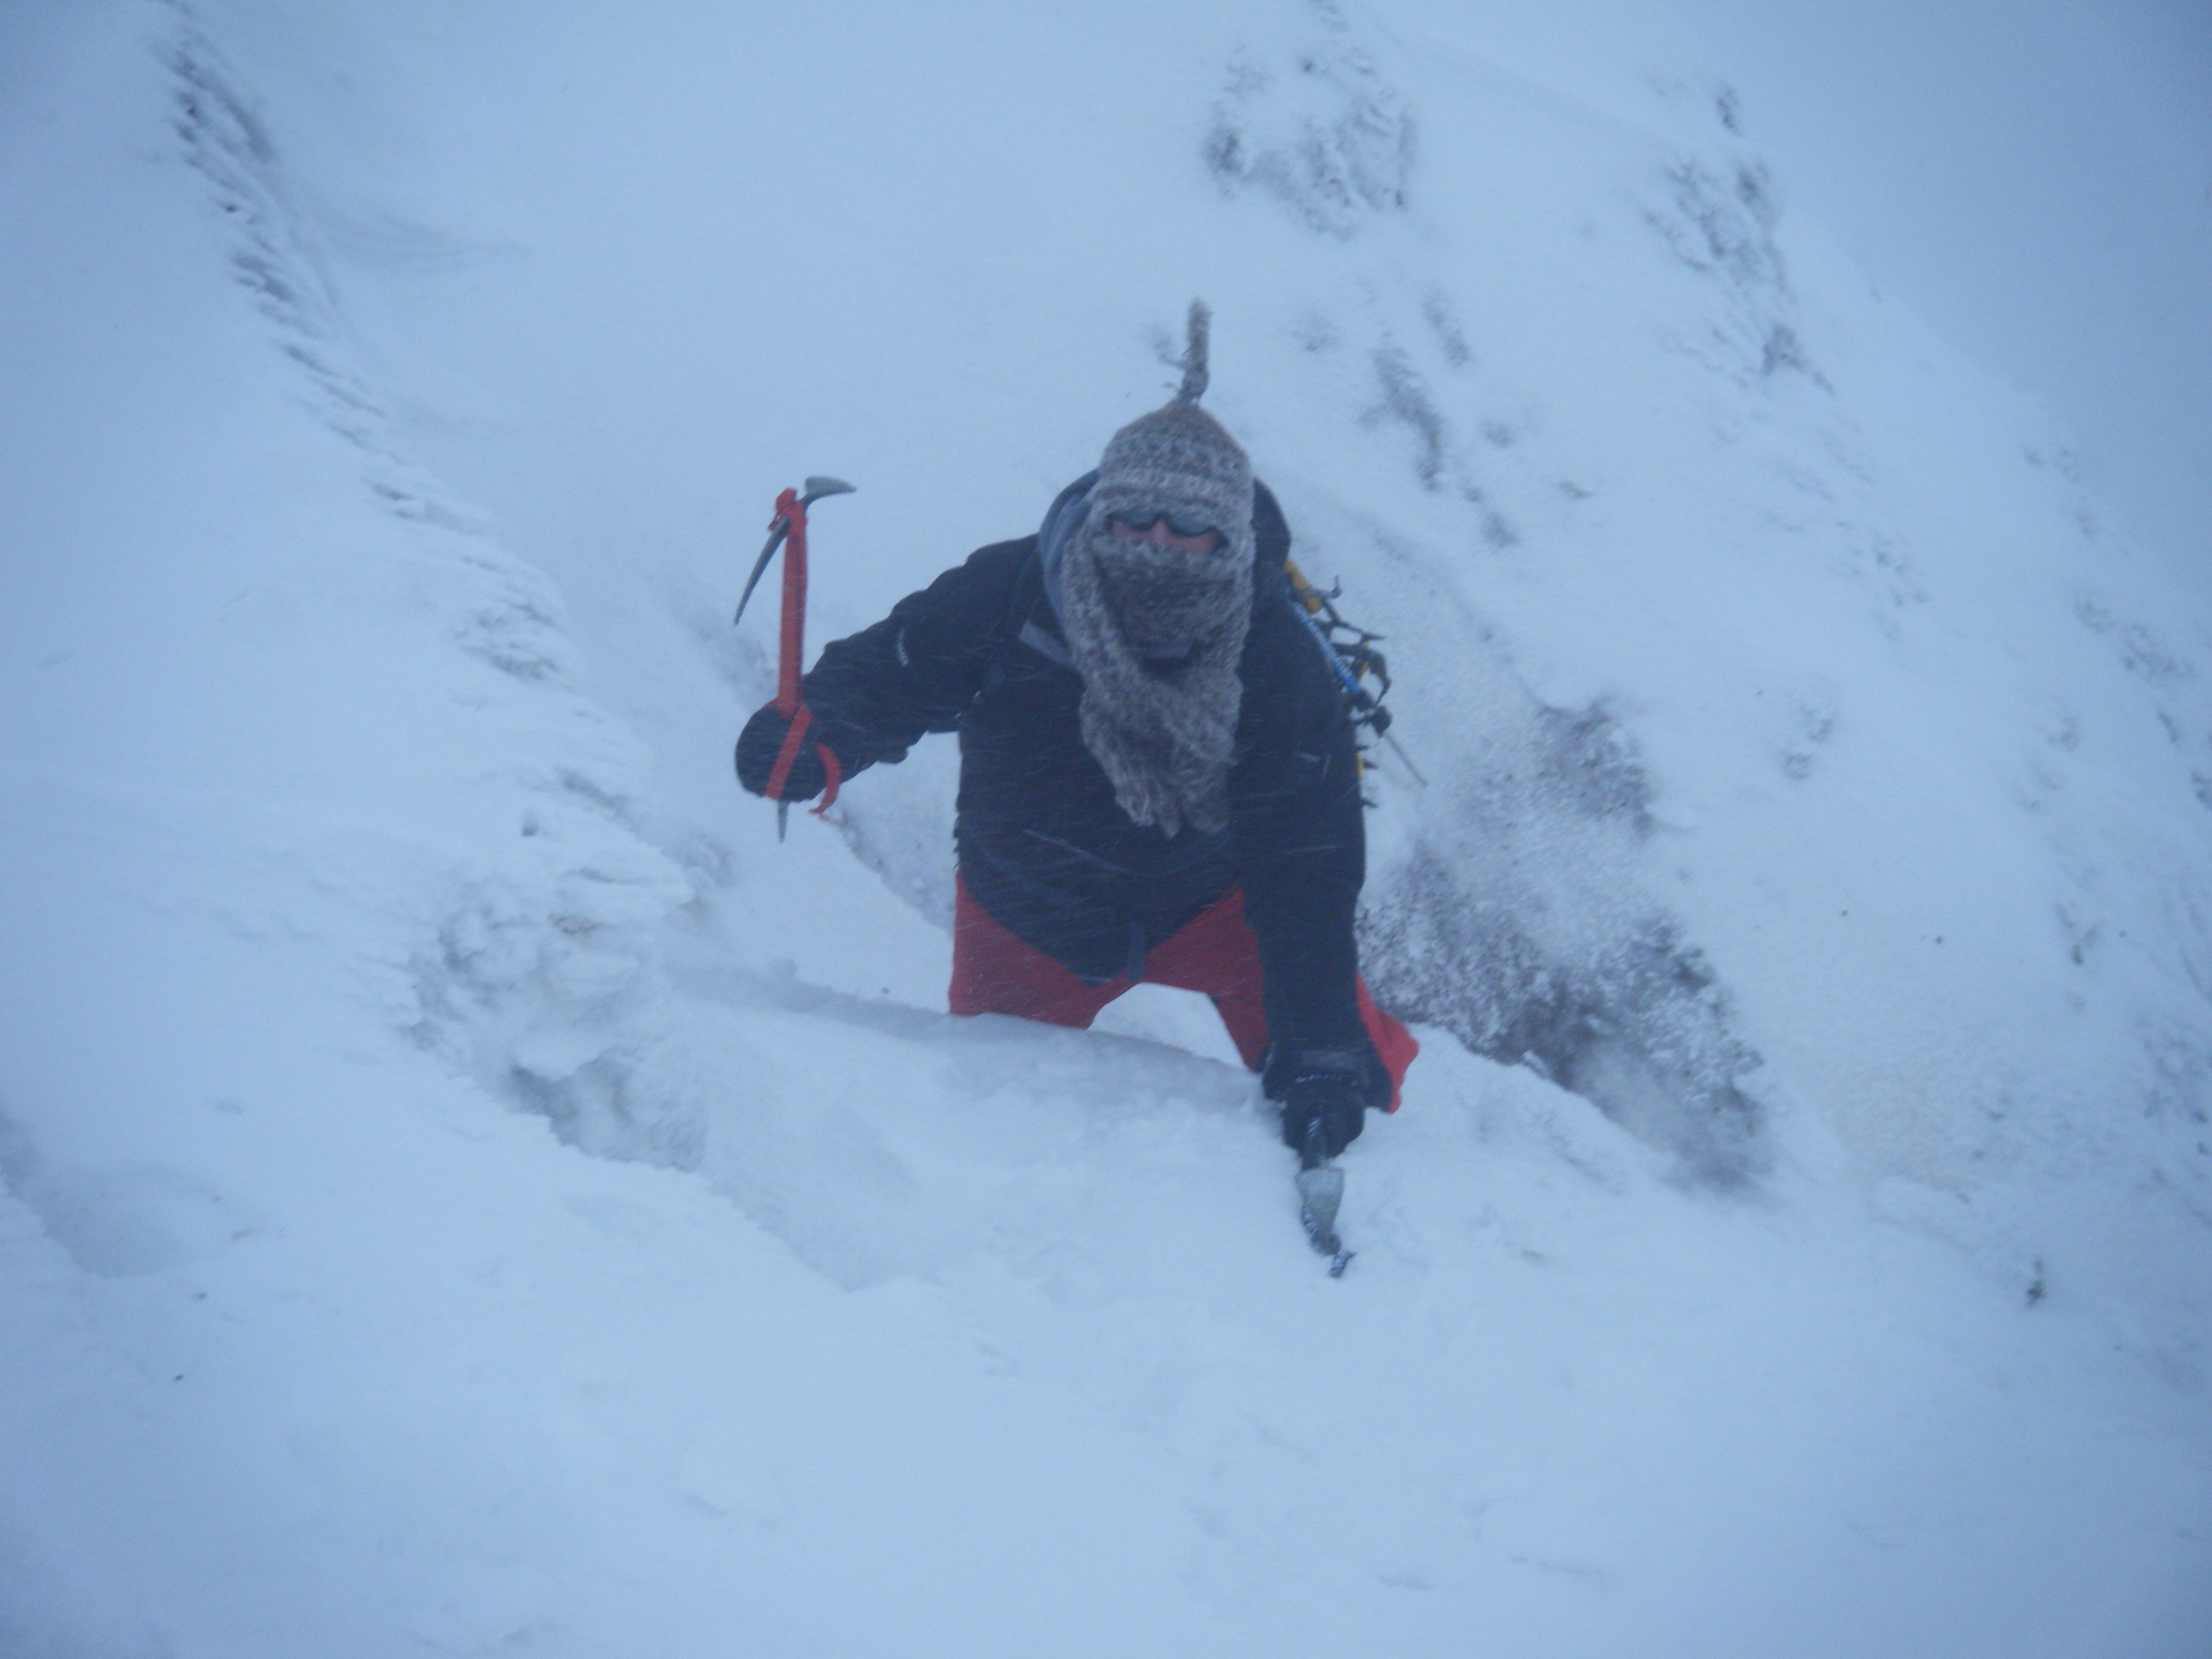 Mountaineering in the Snow